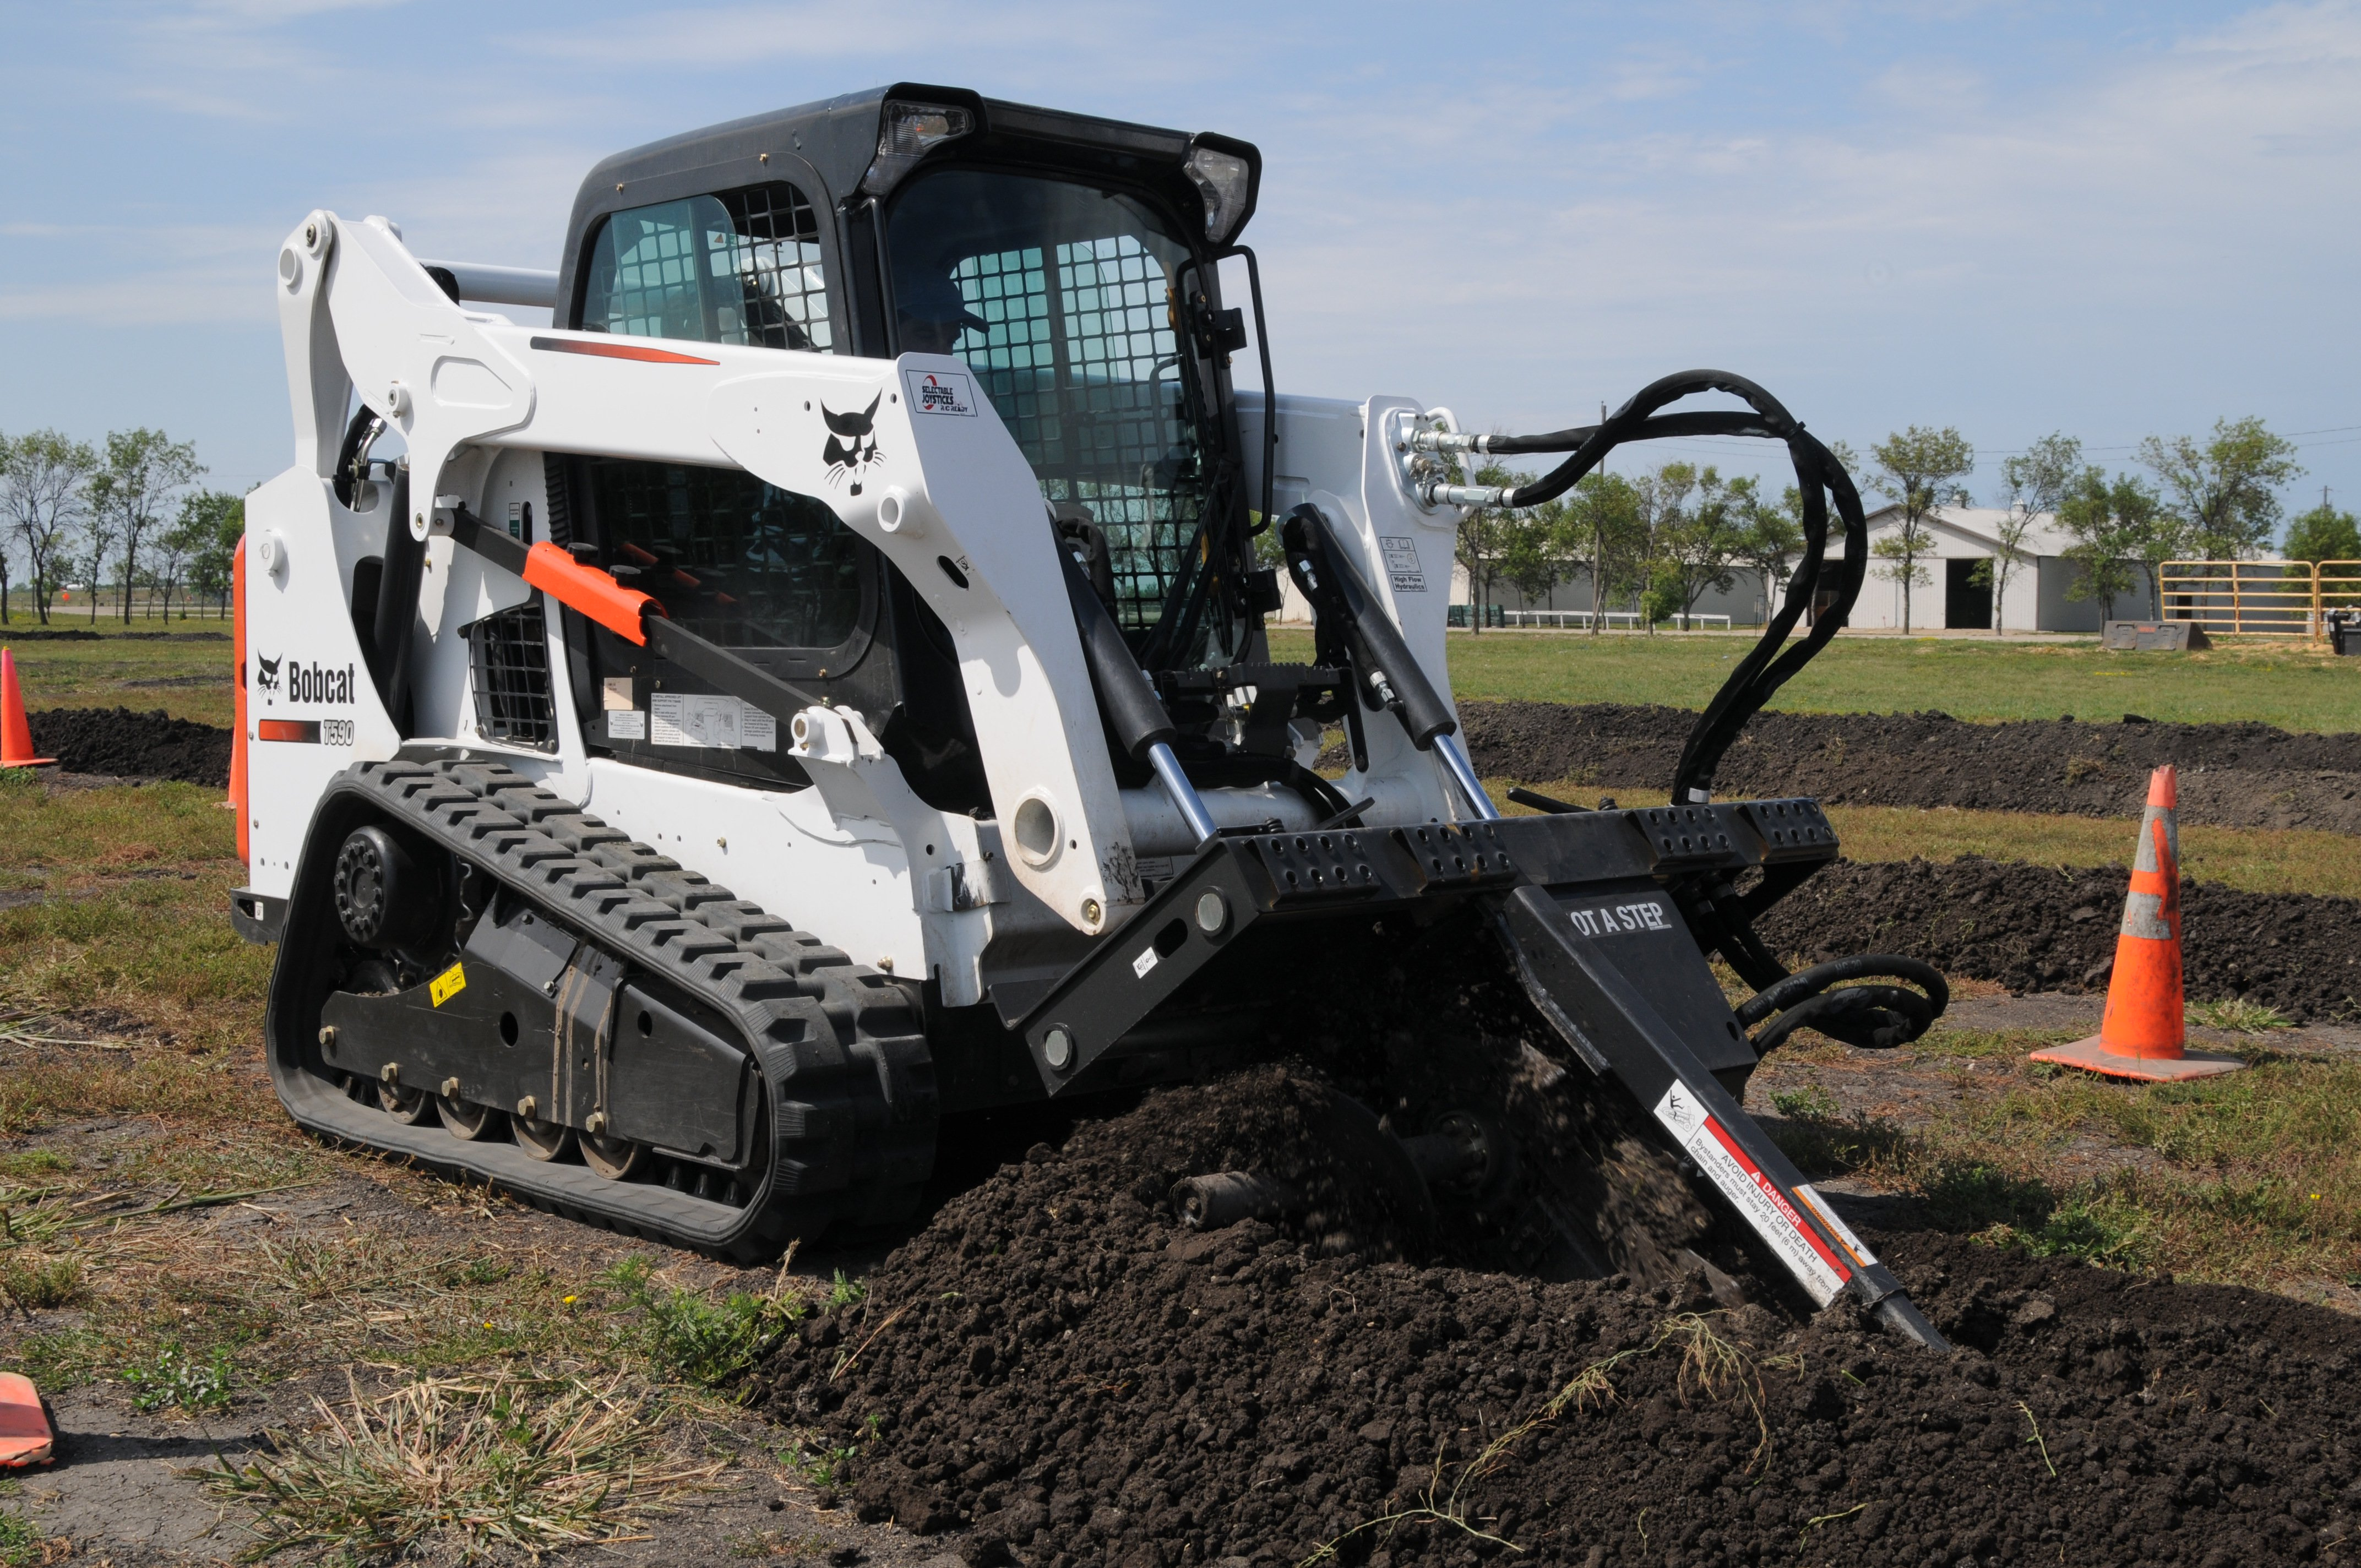 Bobcat T590 Compact Loader Production Tops Predecessor by 20